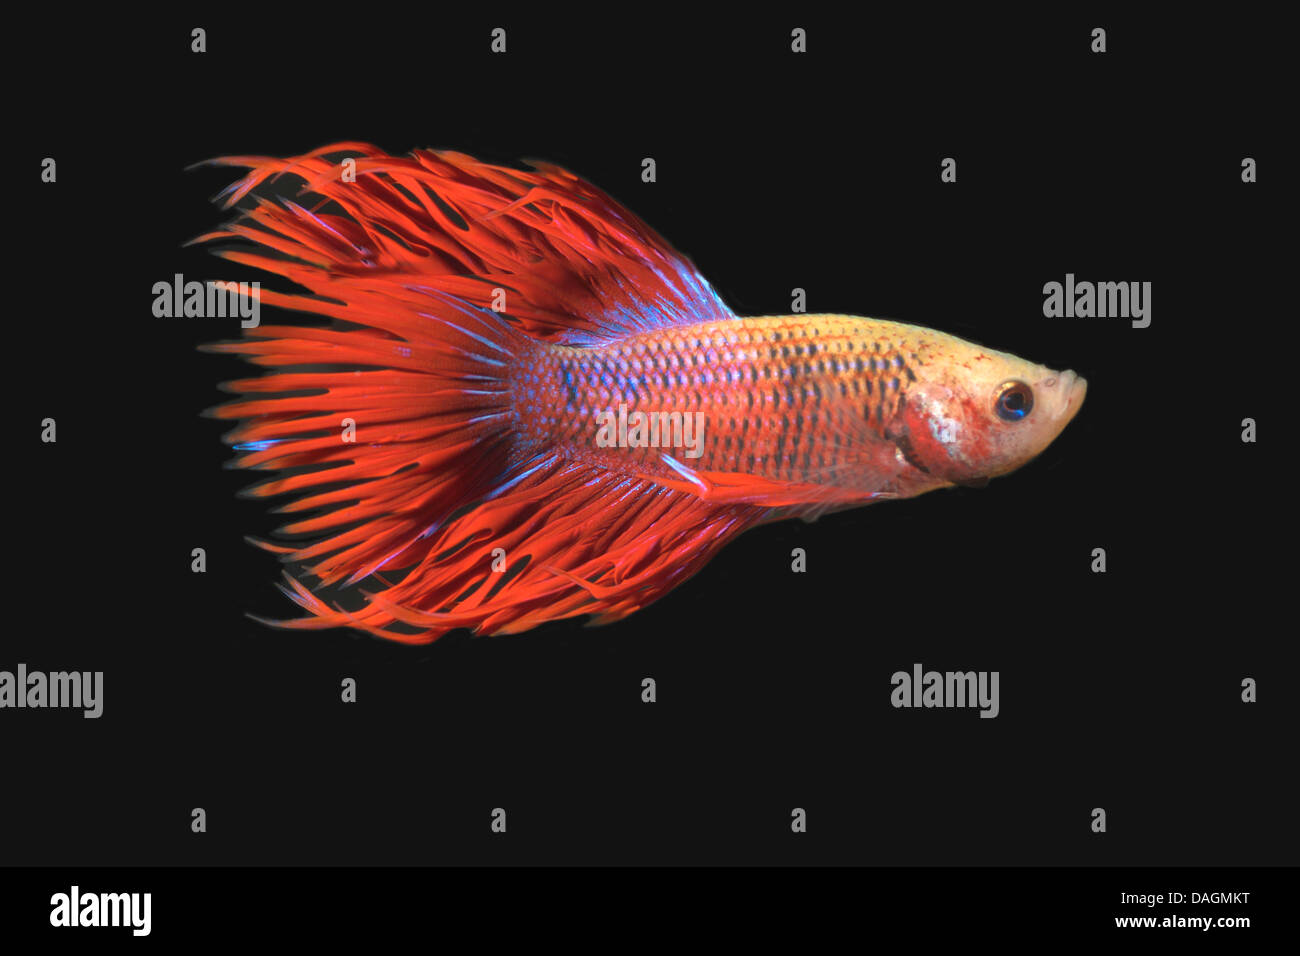 Red Morphs Stock Photos & Red Morphs Stock Images - Alamy